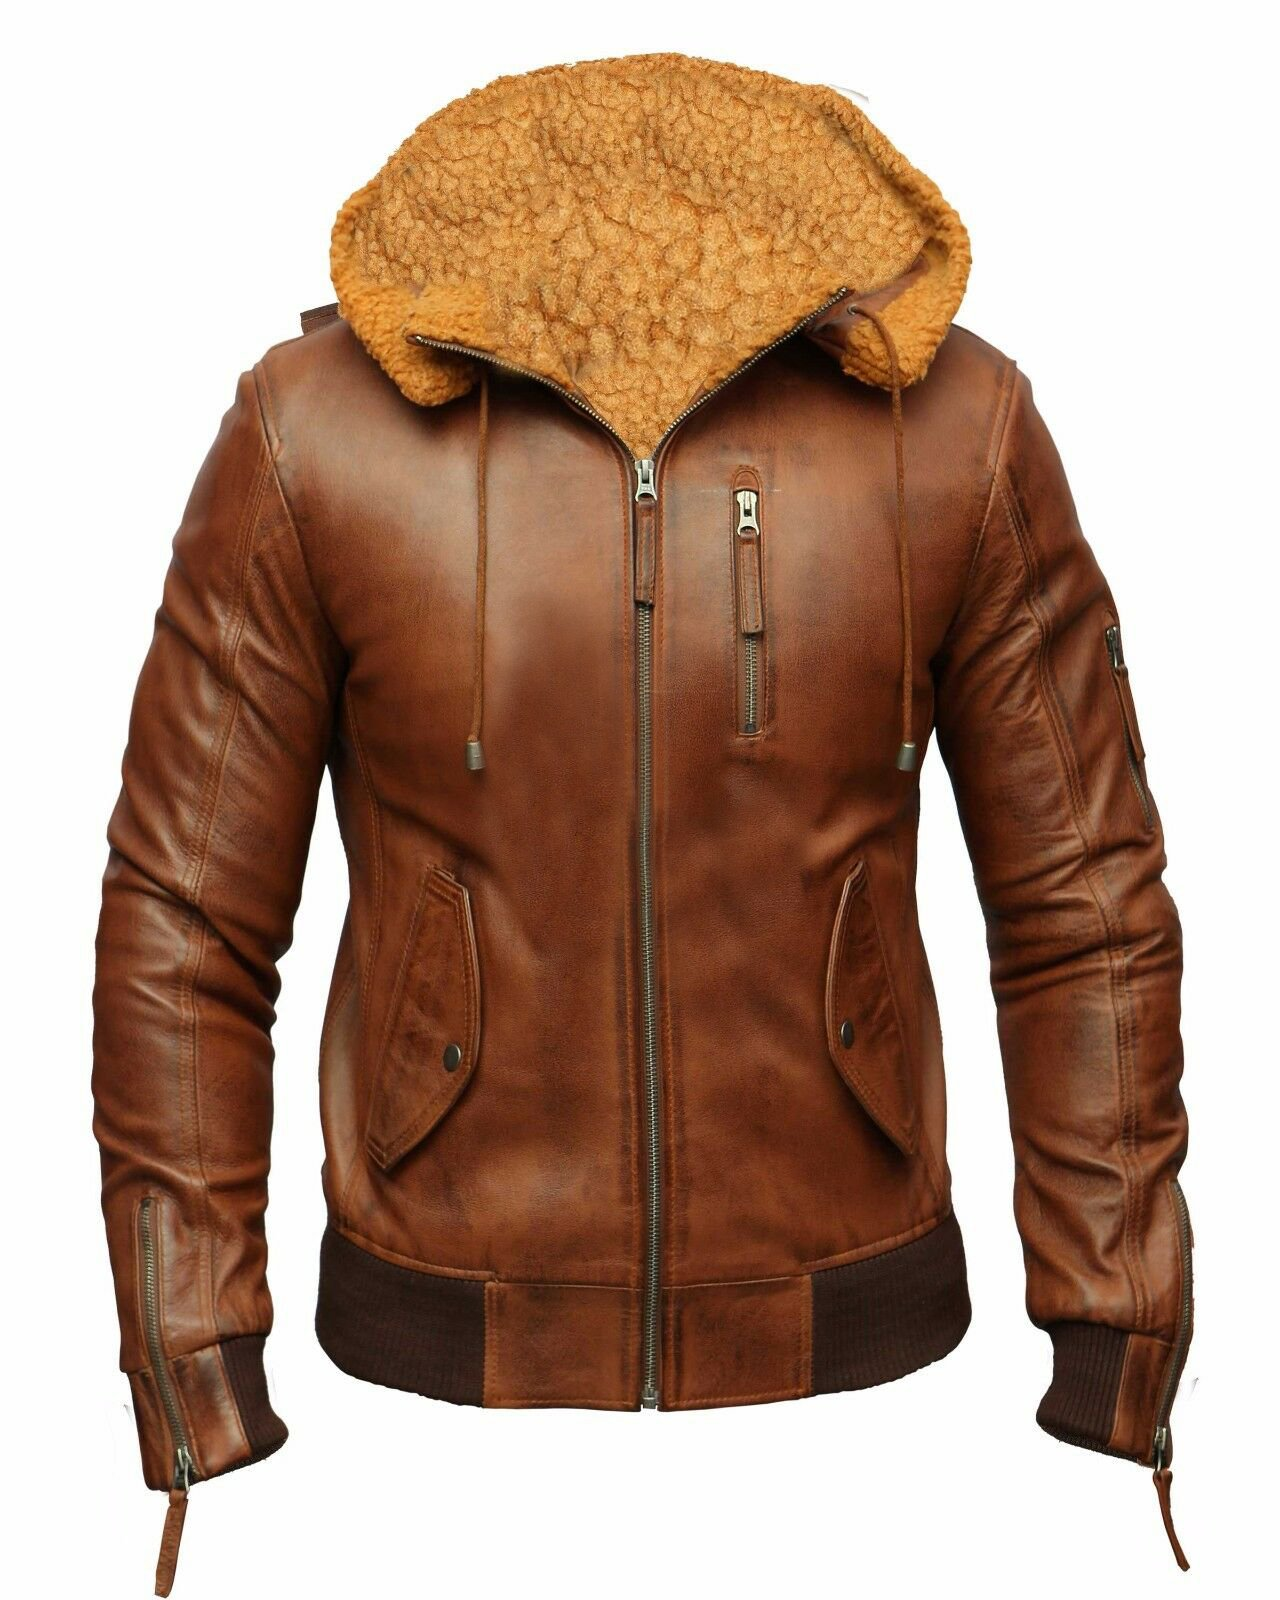 Men Leather Jacket 100% Cowhide For Winter